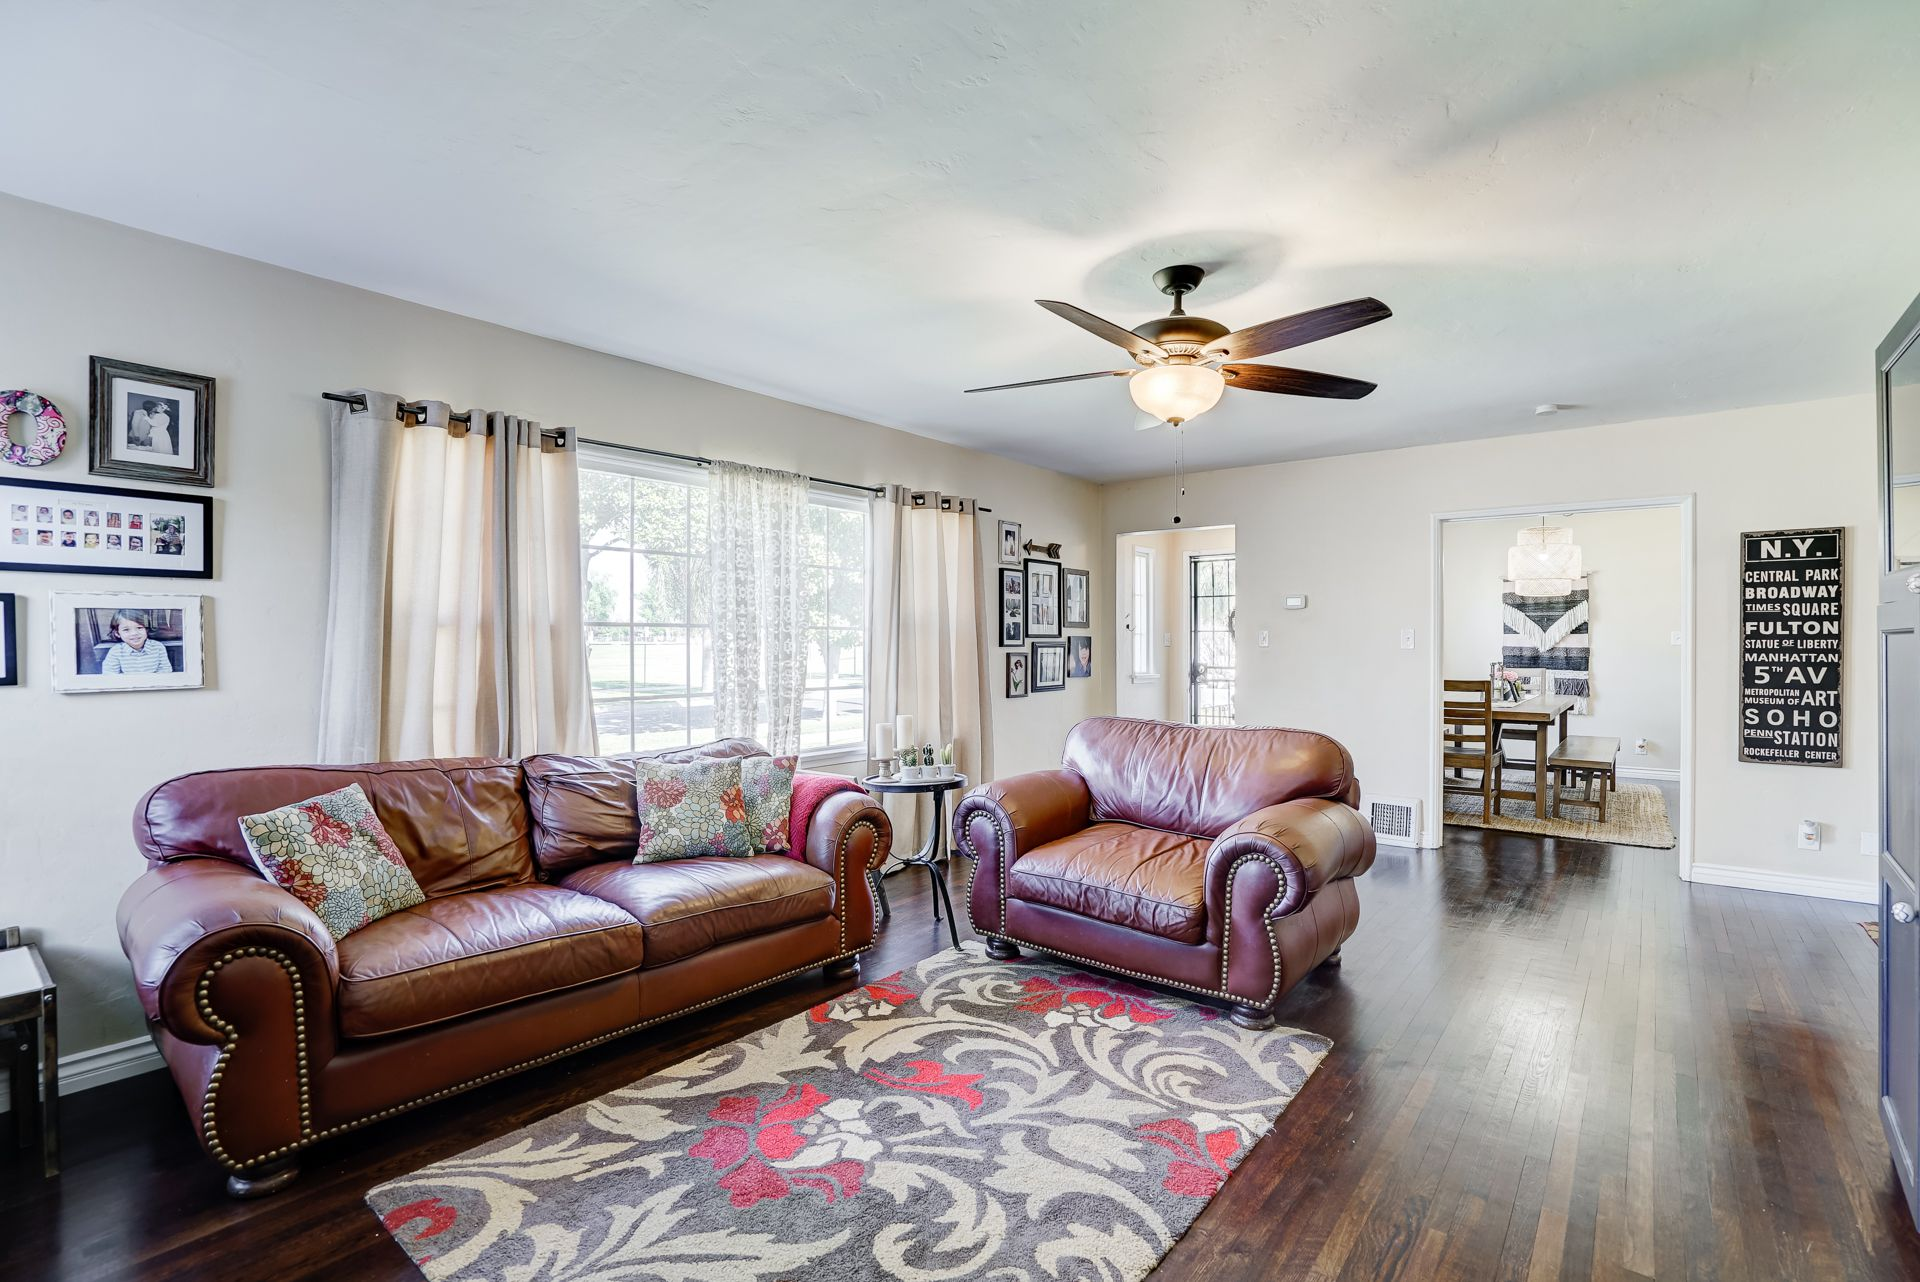 Spacious living room with included entertainment center, as well as ceiling fan and wood-burning fireplace.